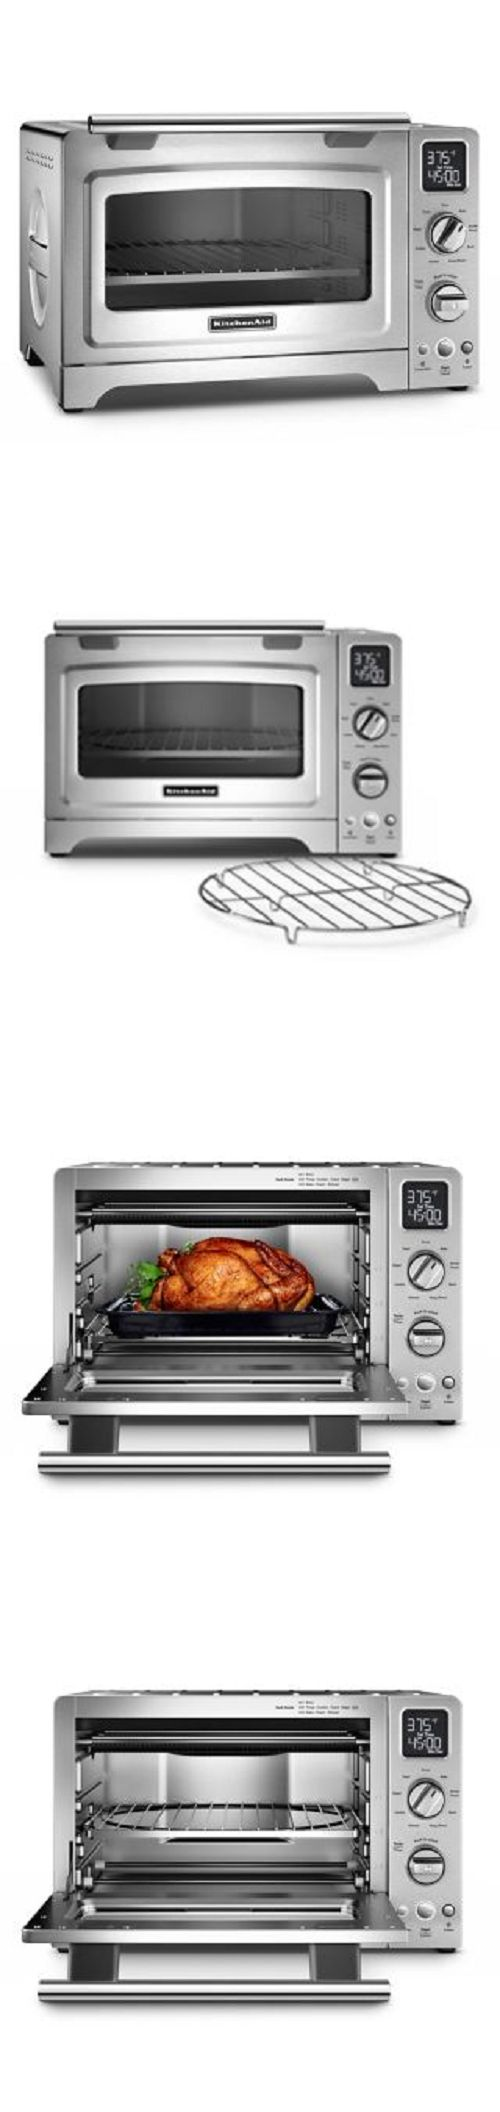 Infrared And Convection Ovens 150139 Kitchenaid Kco275ss 12